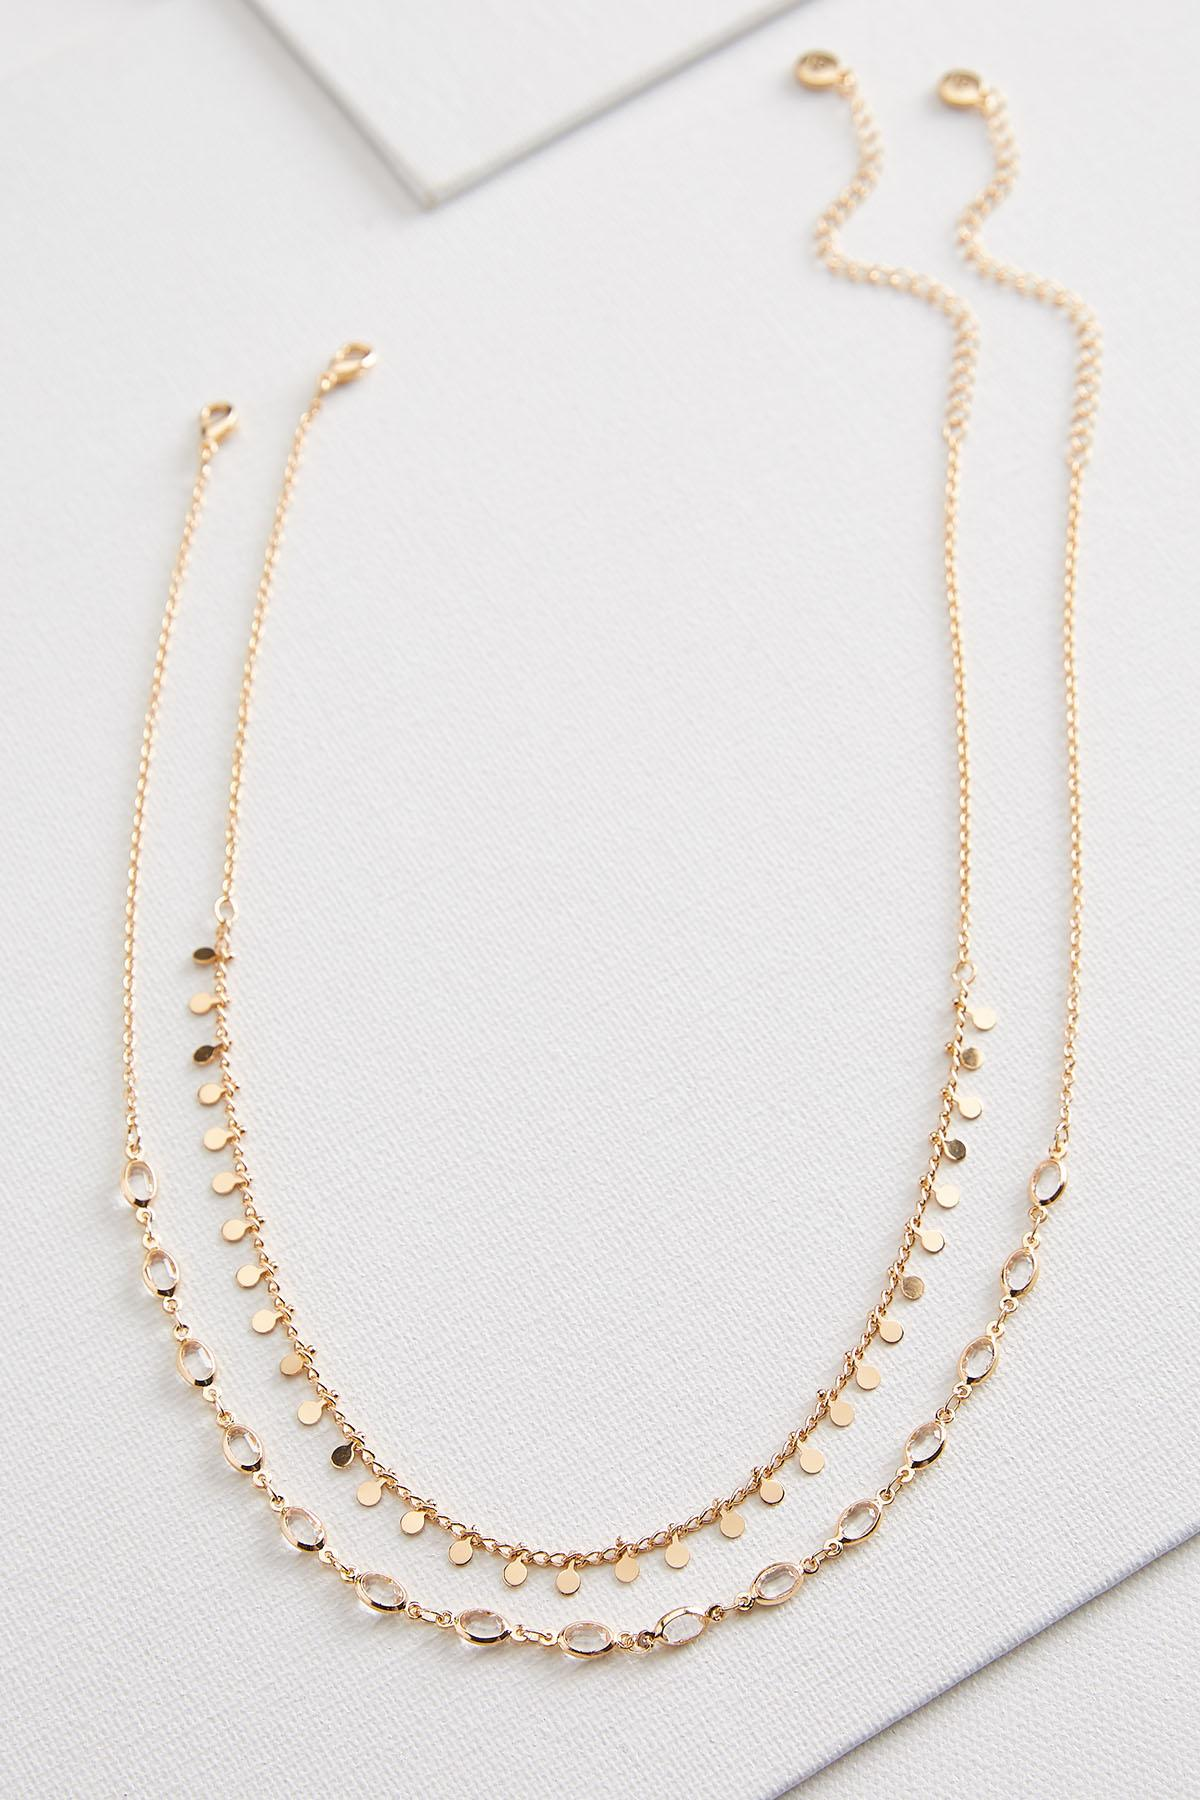 Not So Simple Necklace